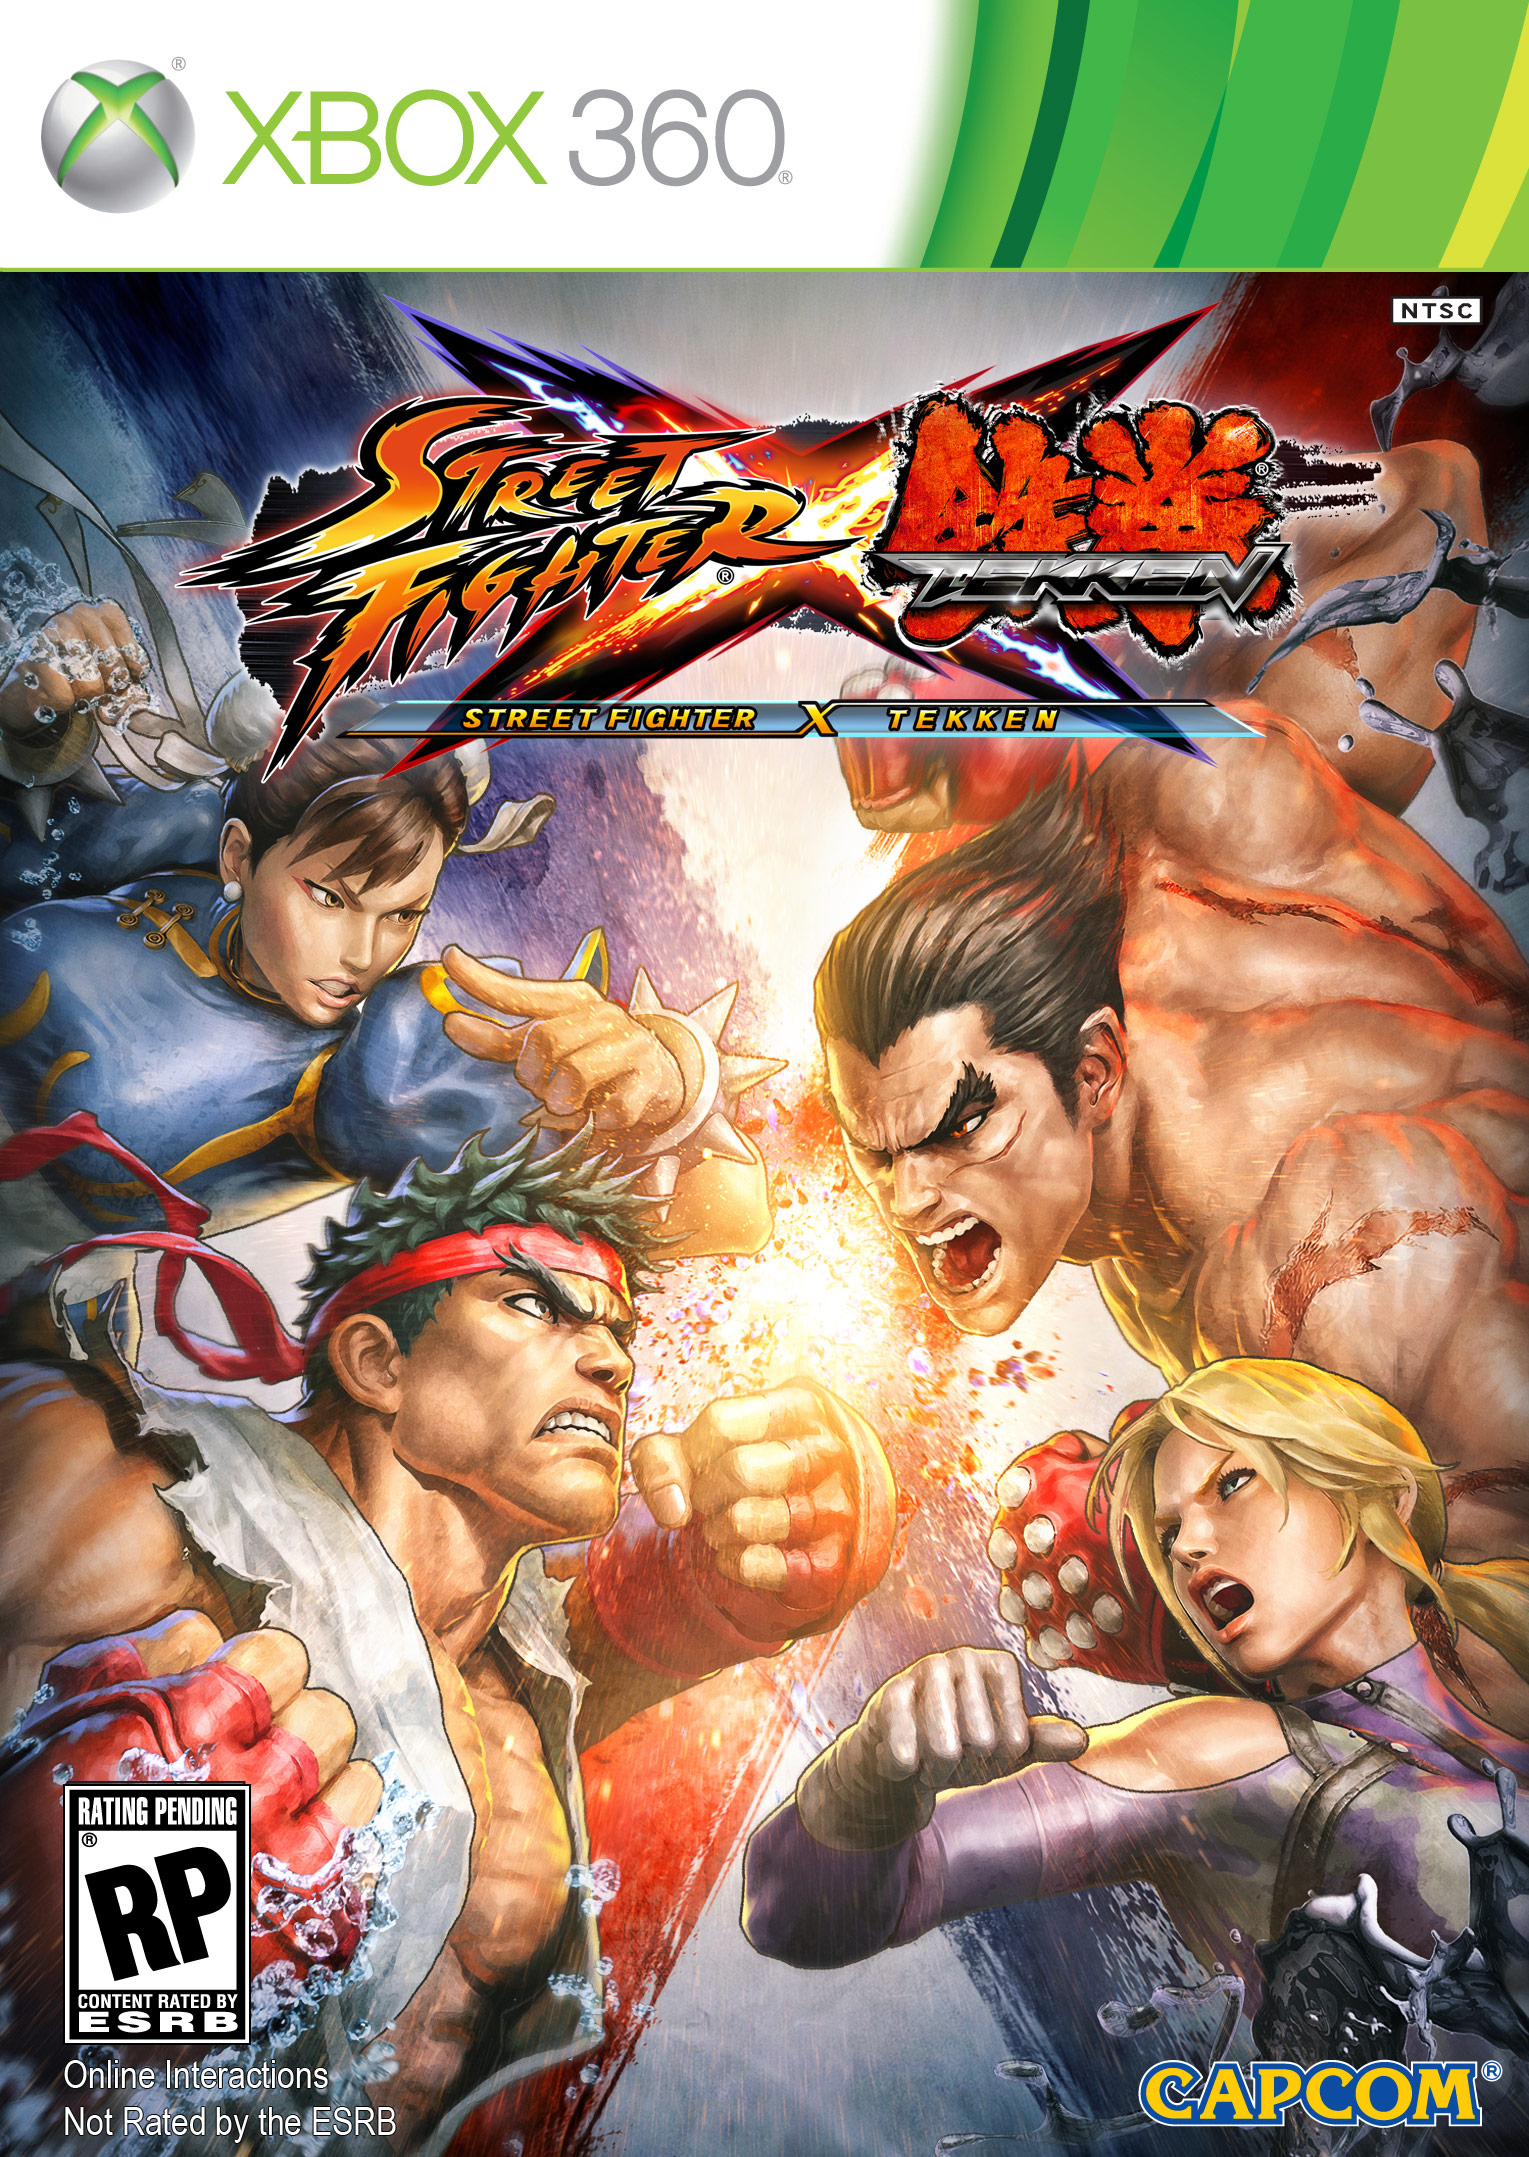 Cover artwork for Street Fighter X Tekken on the Xbox 360